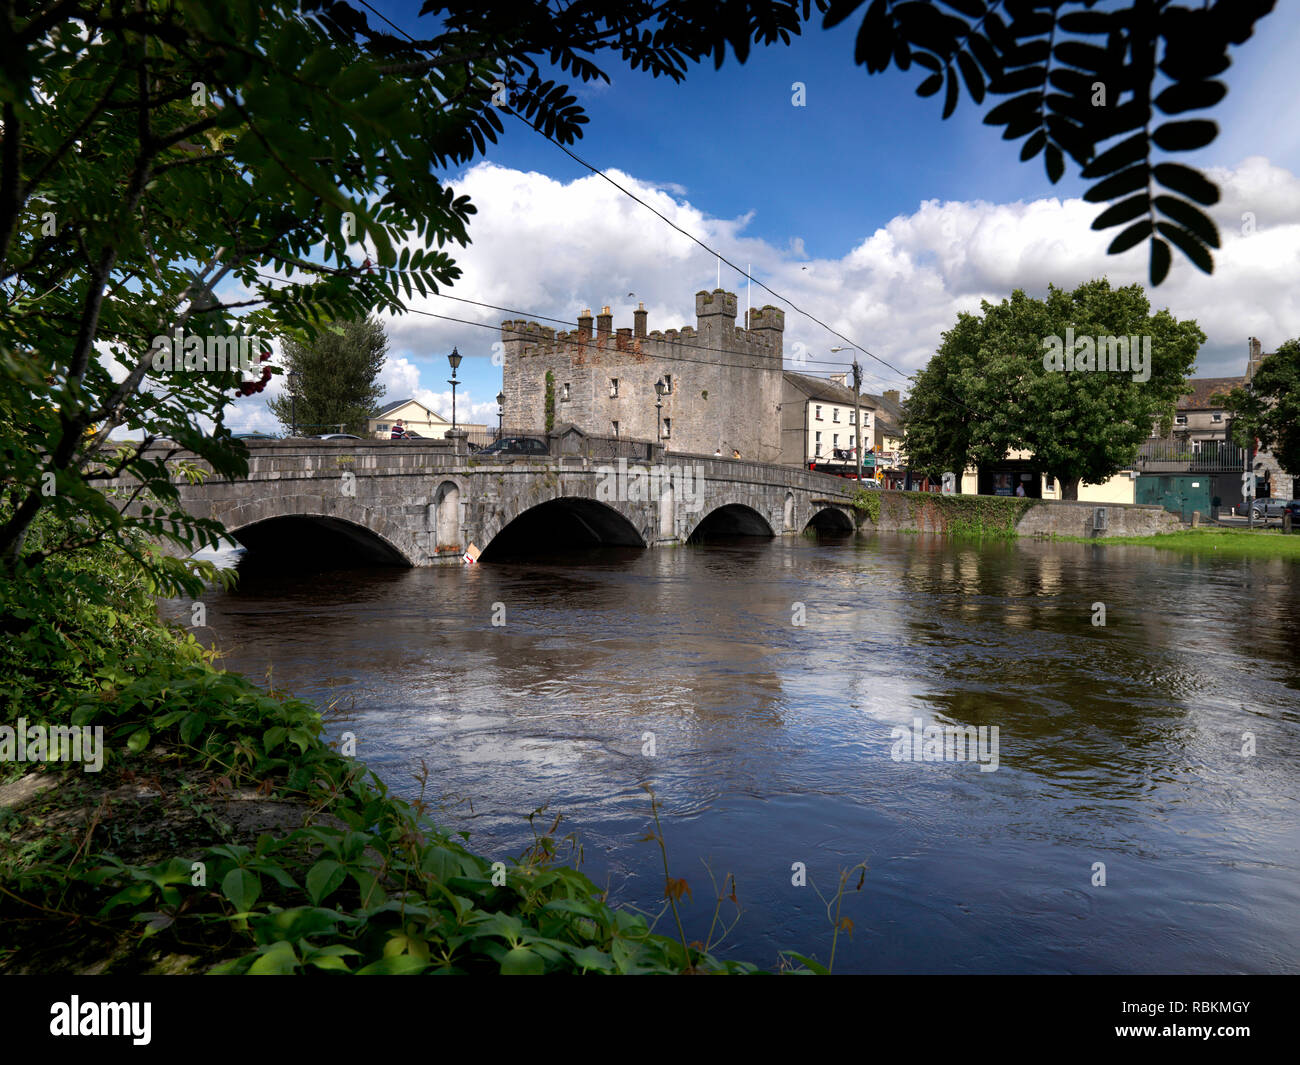 Whites Castle, Athy, Co. Kildare, Ireland - Stock Image